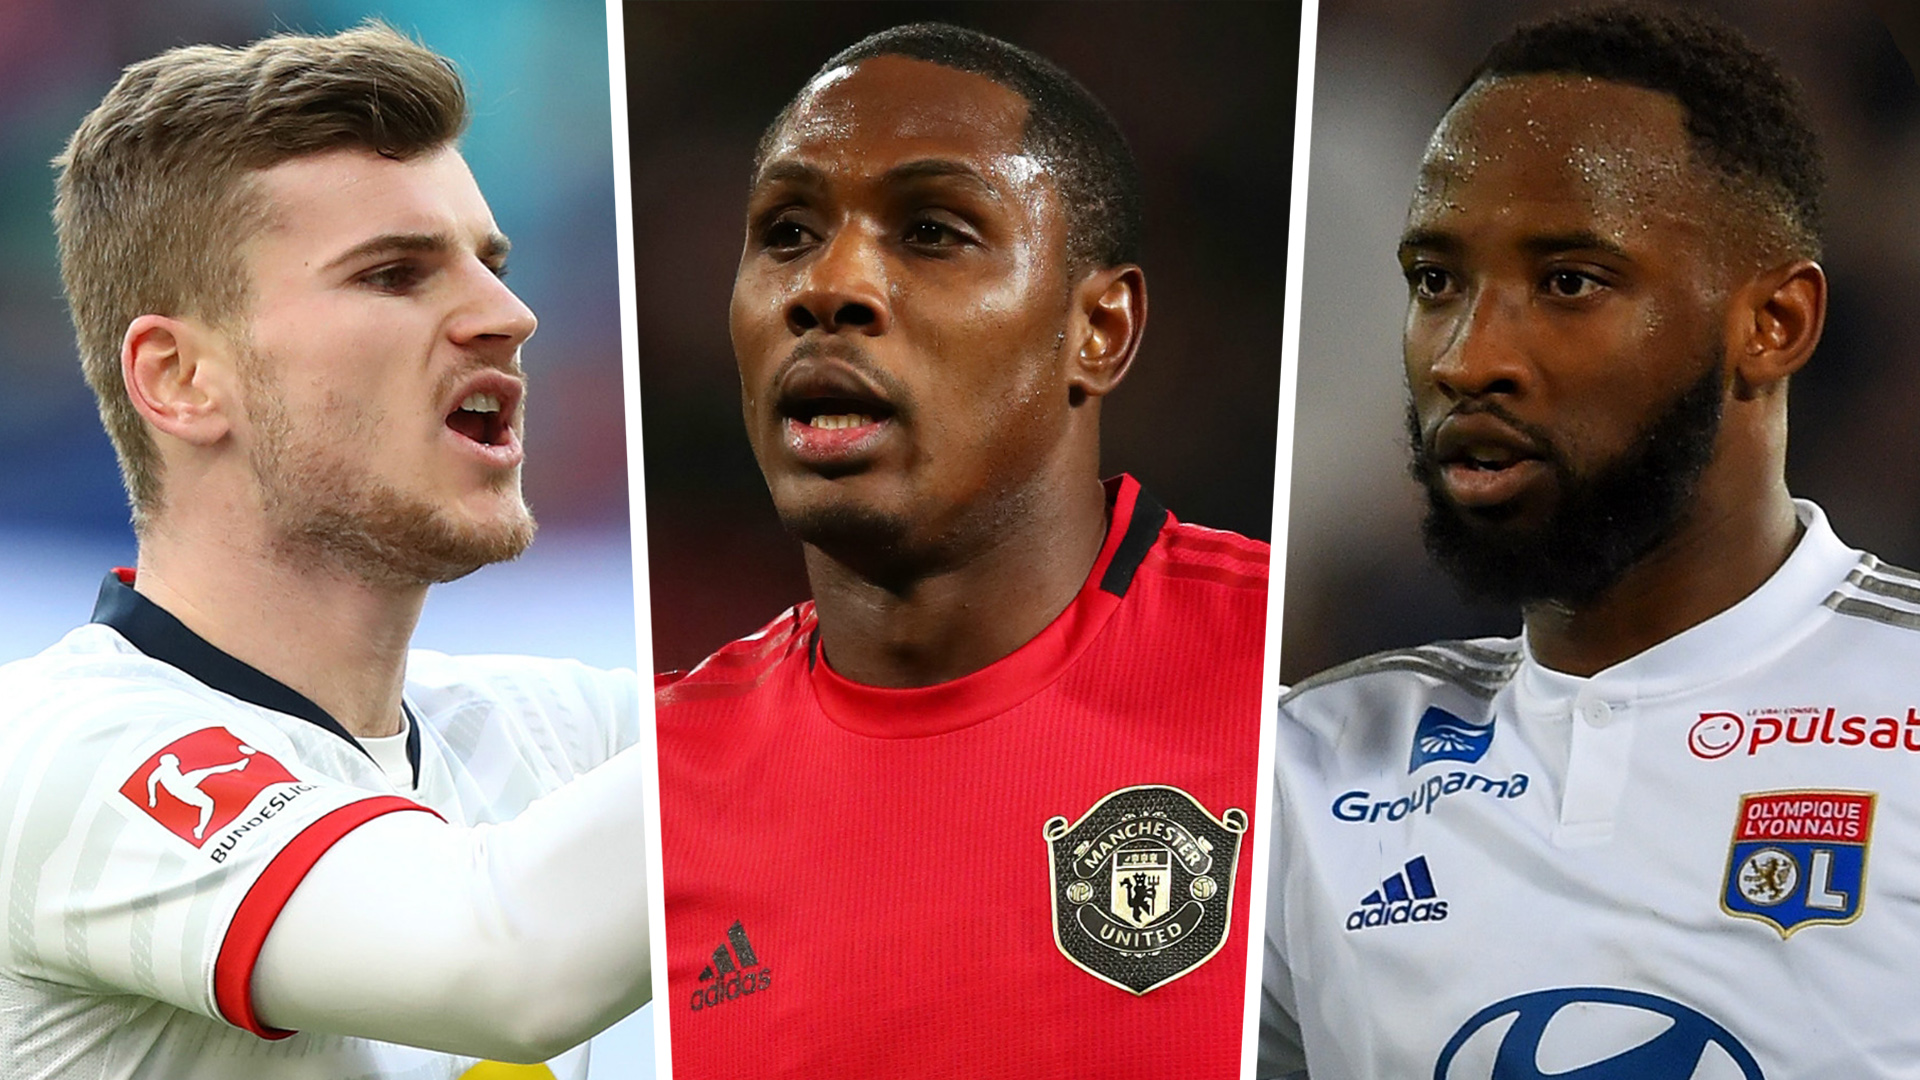 Man Utd to focus on targets like Dembele and Werner as Ighalo loan spell ends